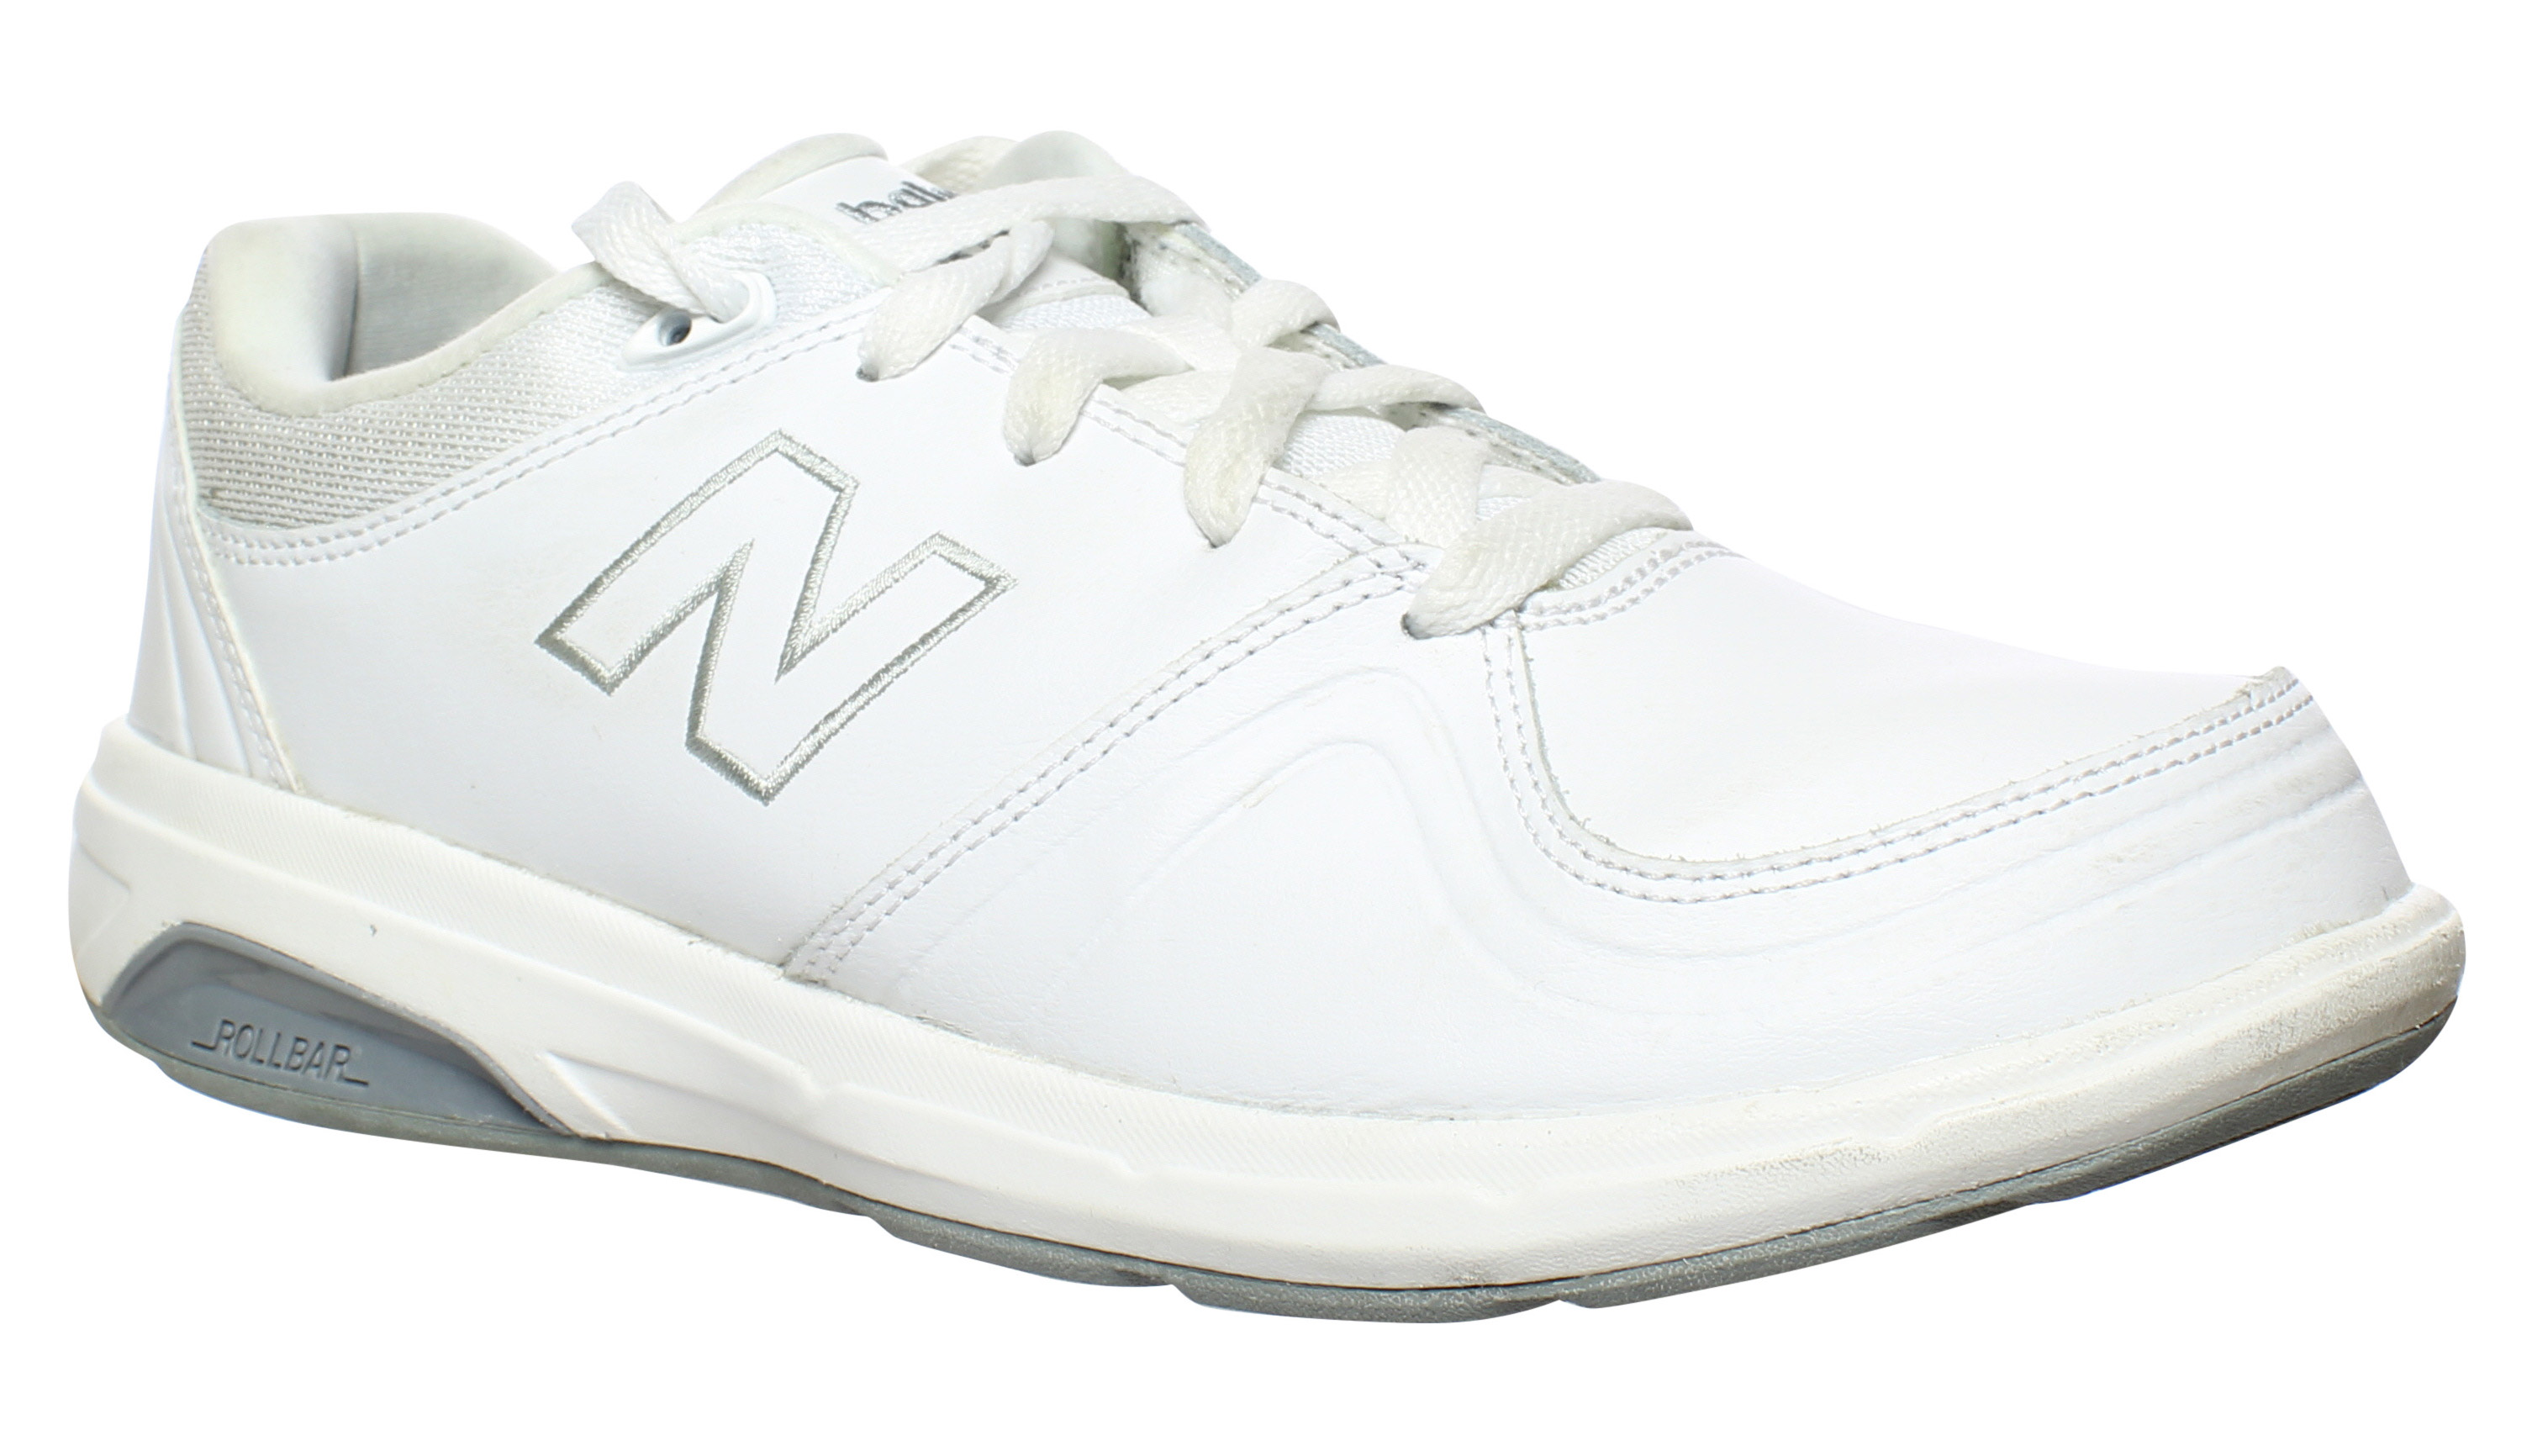 New Balance Womens Ww813wt White Walking Shoes (C,D,W) Size 8.5 (C,D,W) Shoes (29276) 0f3709